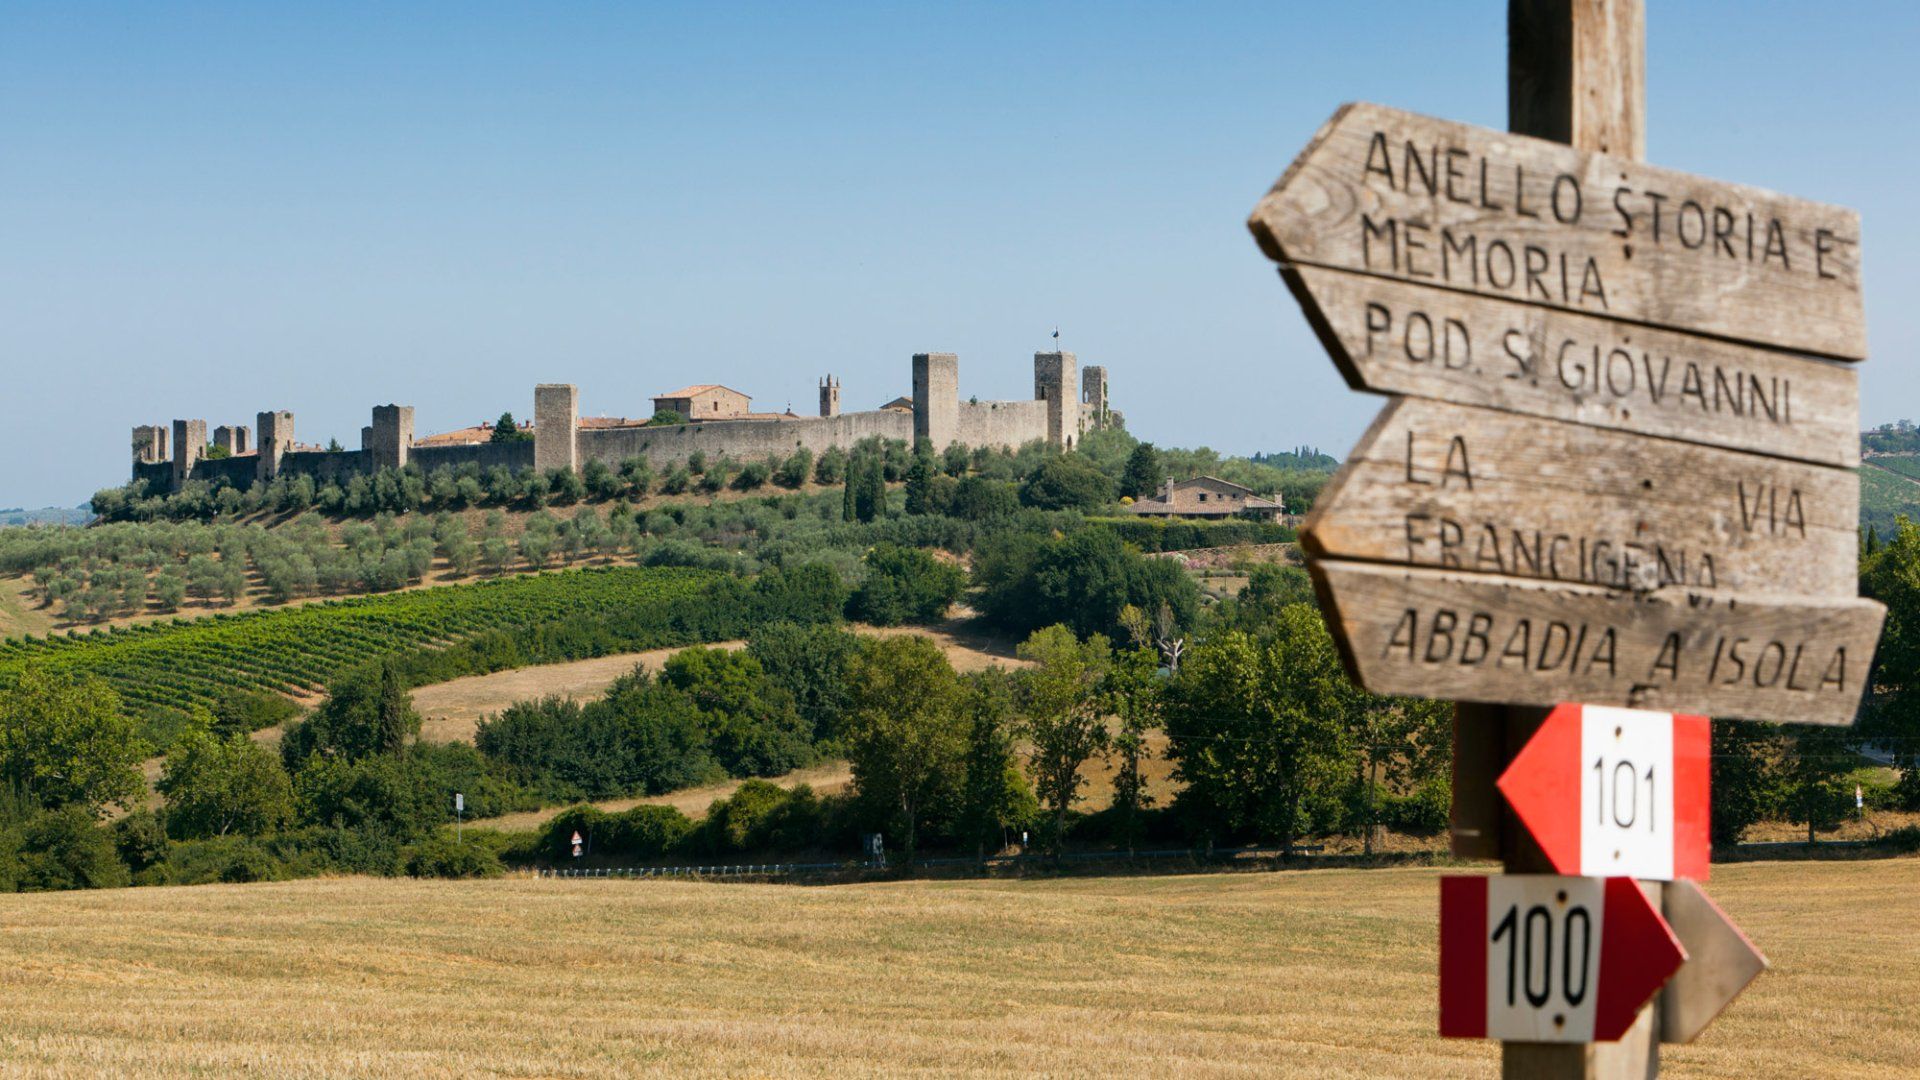 Via Francigena - top